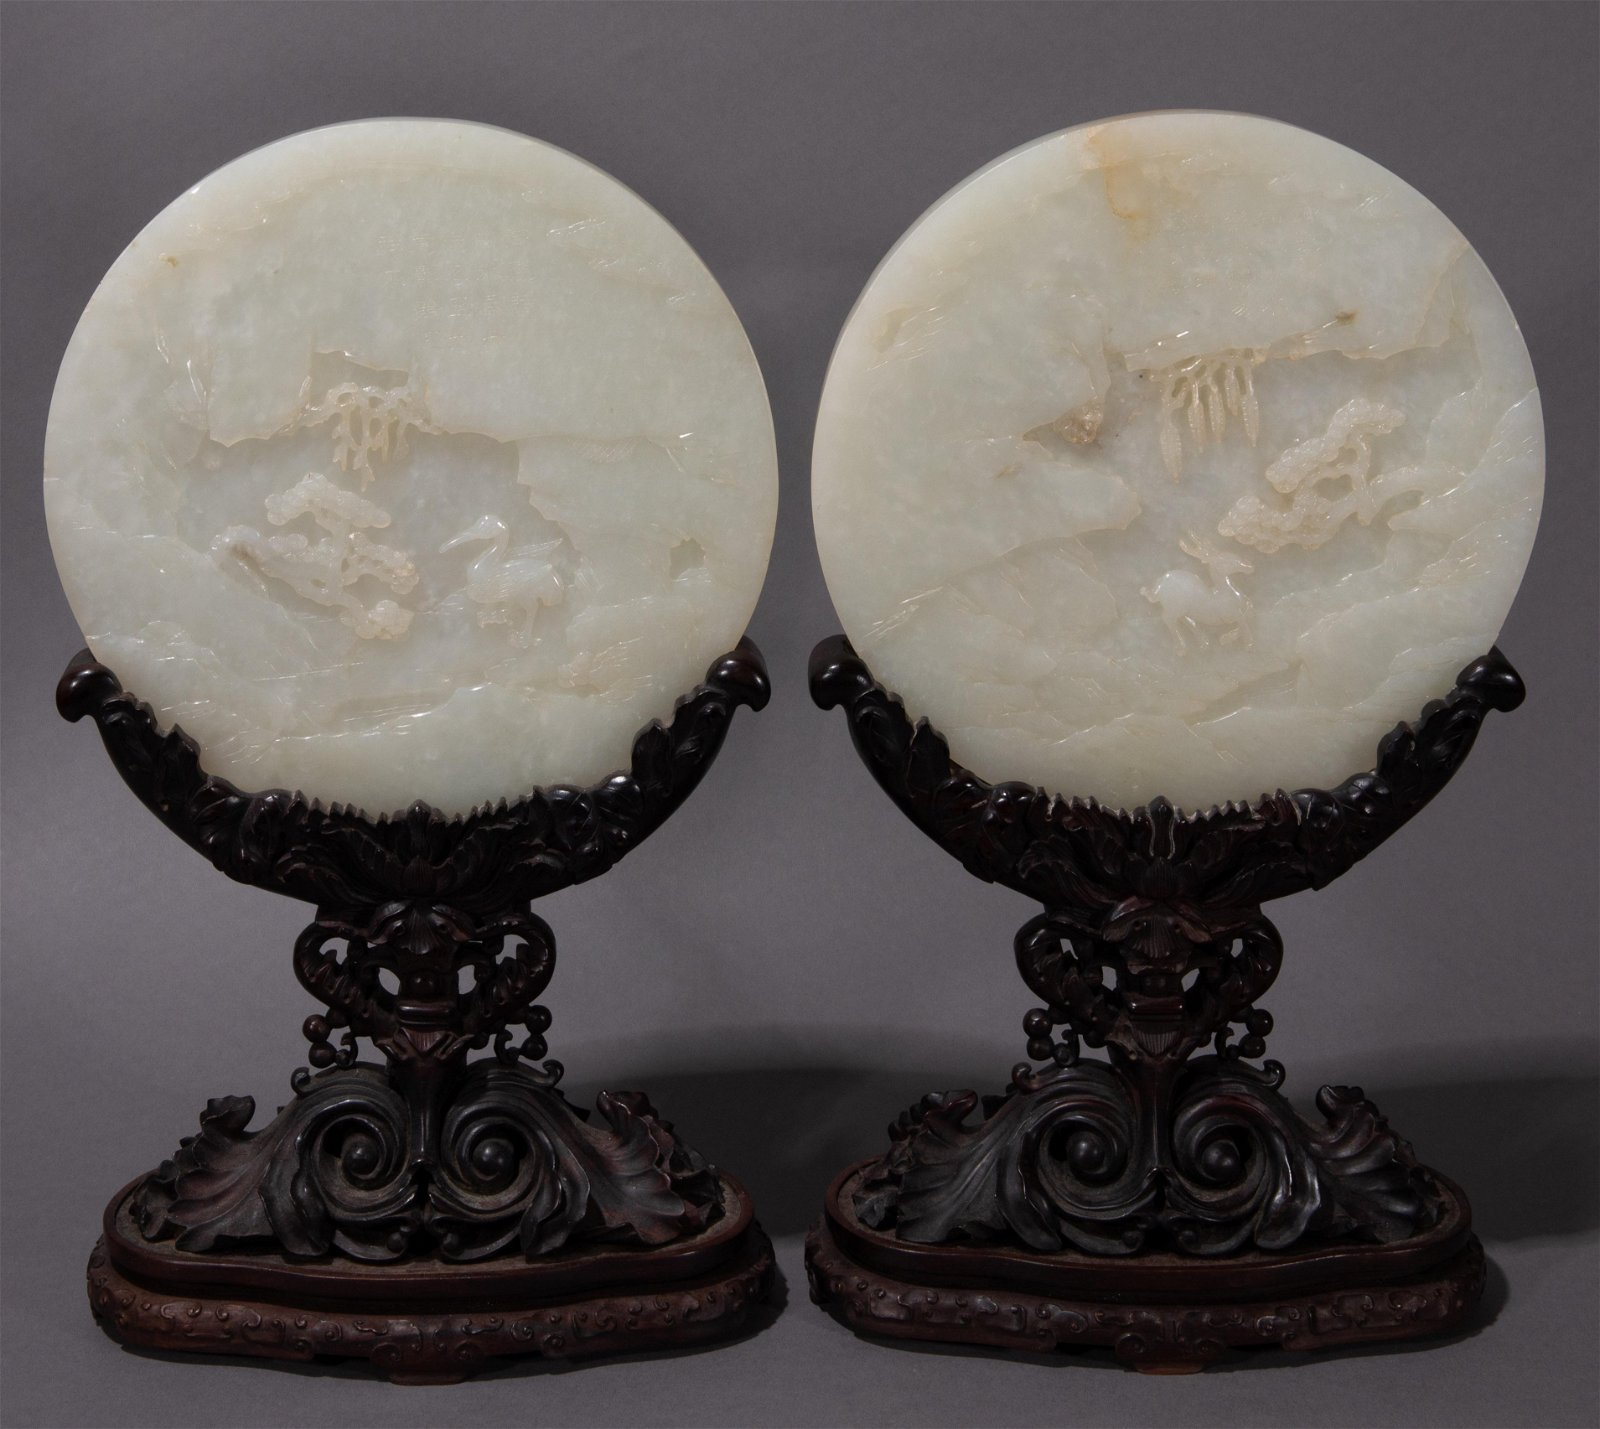 A PAIR OF ANCIENT CHINESE HETIAN WHITE JADE TABLE